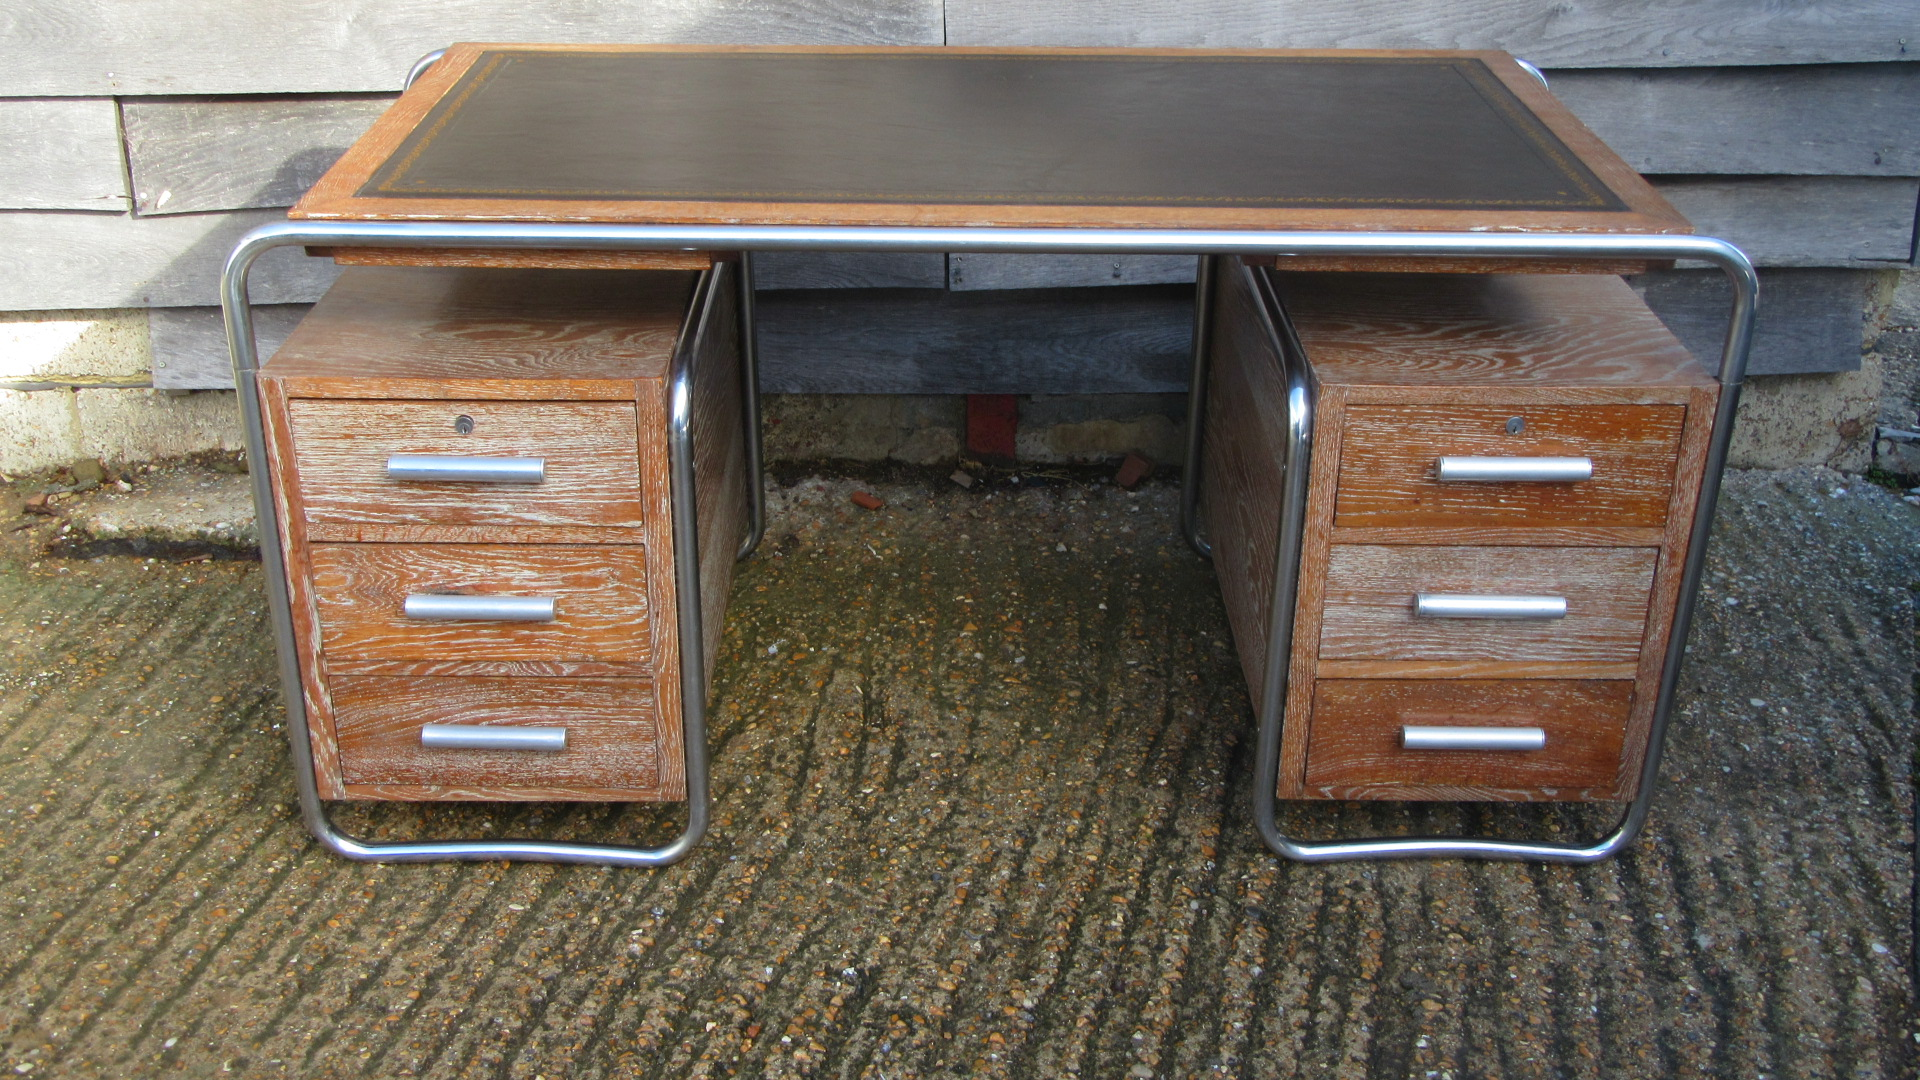 ANTIQUE ART DECO CHROME & LIMED OAK WRITING DESK